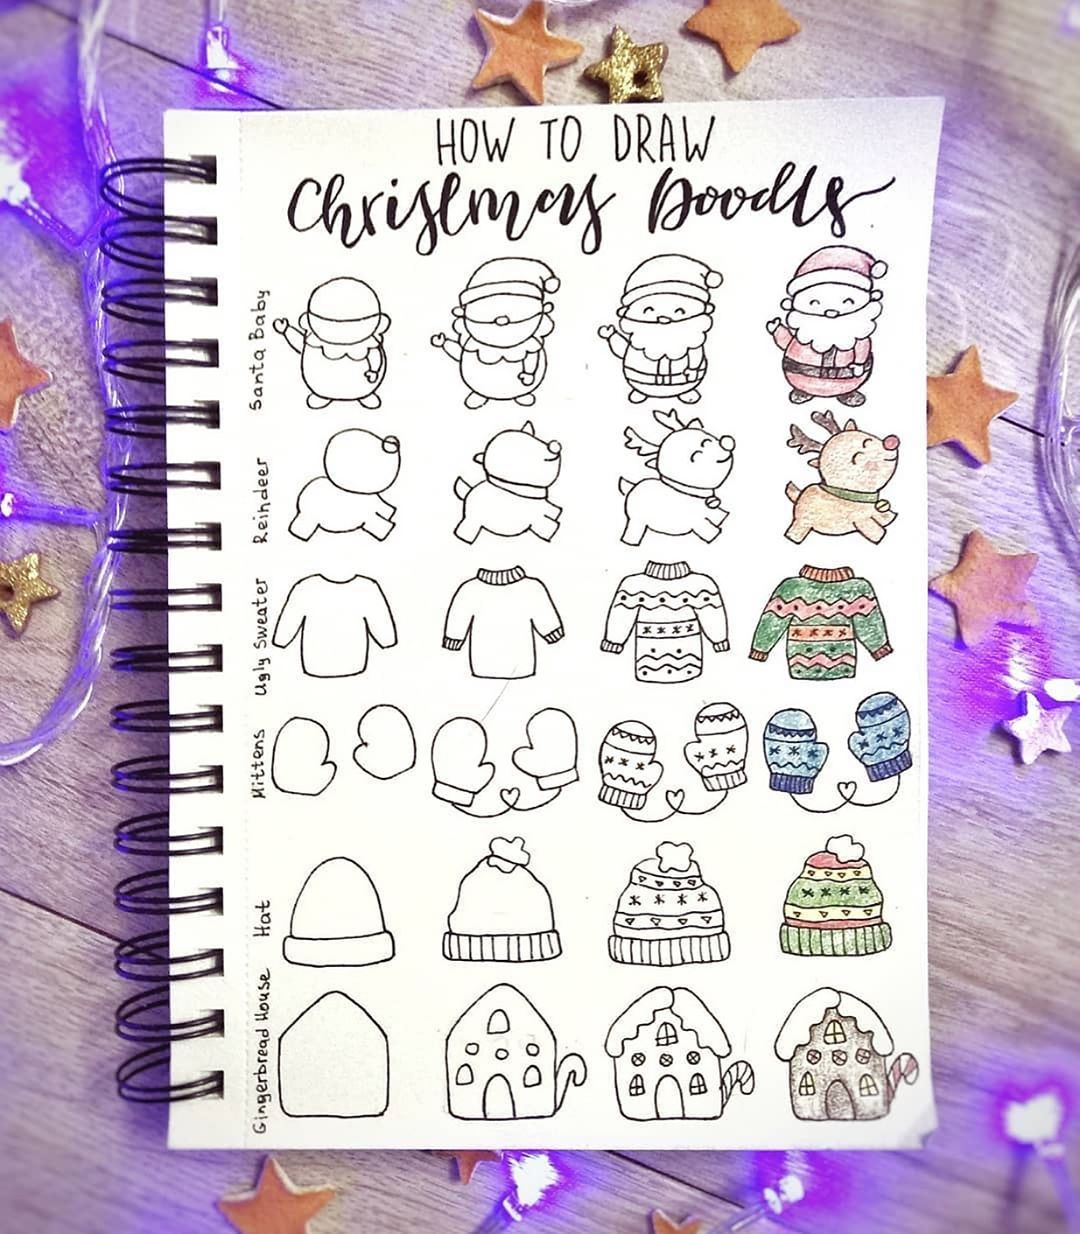 "NotebookTherapy.com | bujo 💕 on Instagram: ""In need of some cute doodles for your December journaling? 🧣🎅🏼❄️ @ginger.bullet.journal has you covered! Love these adorable step by steps…"""